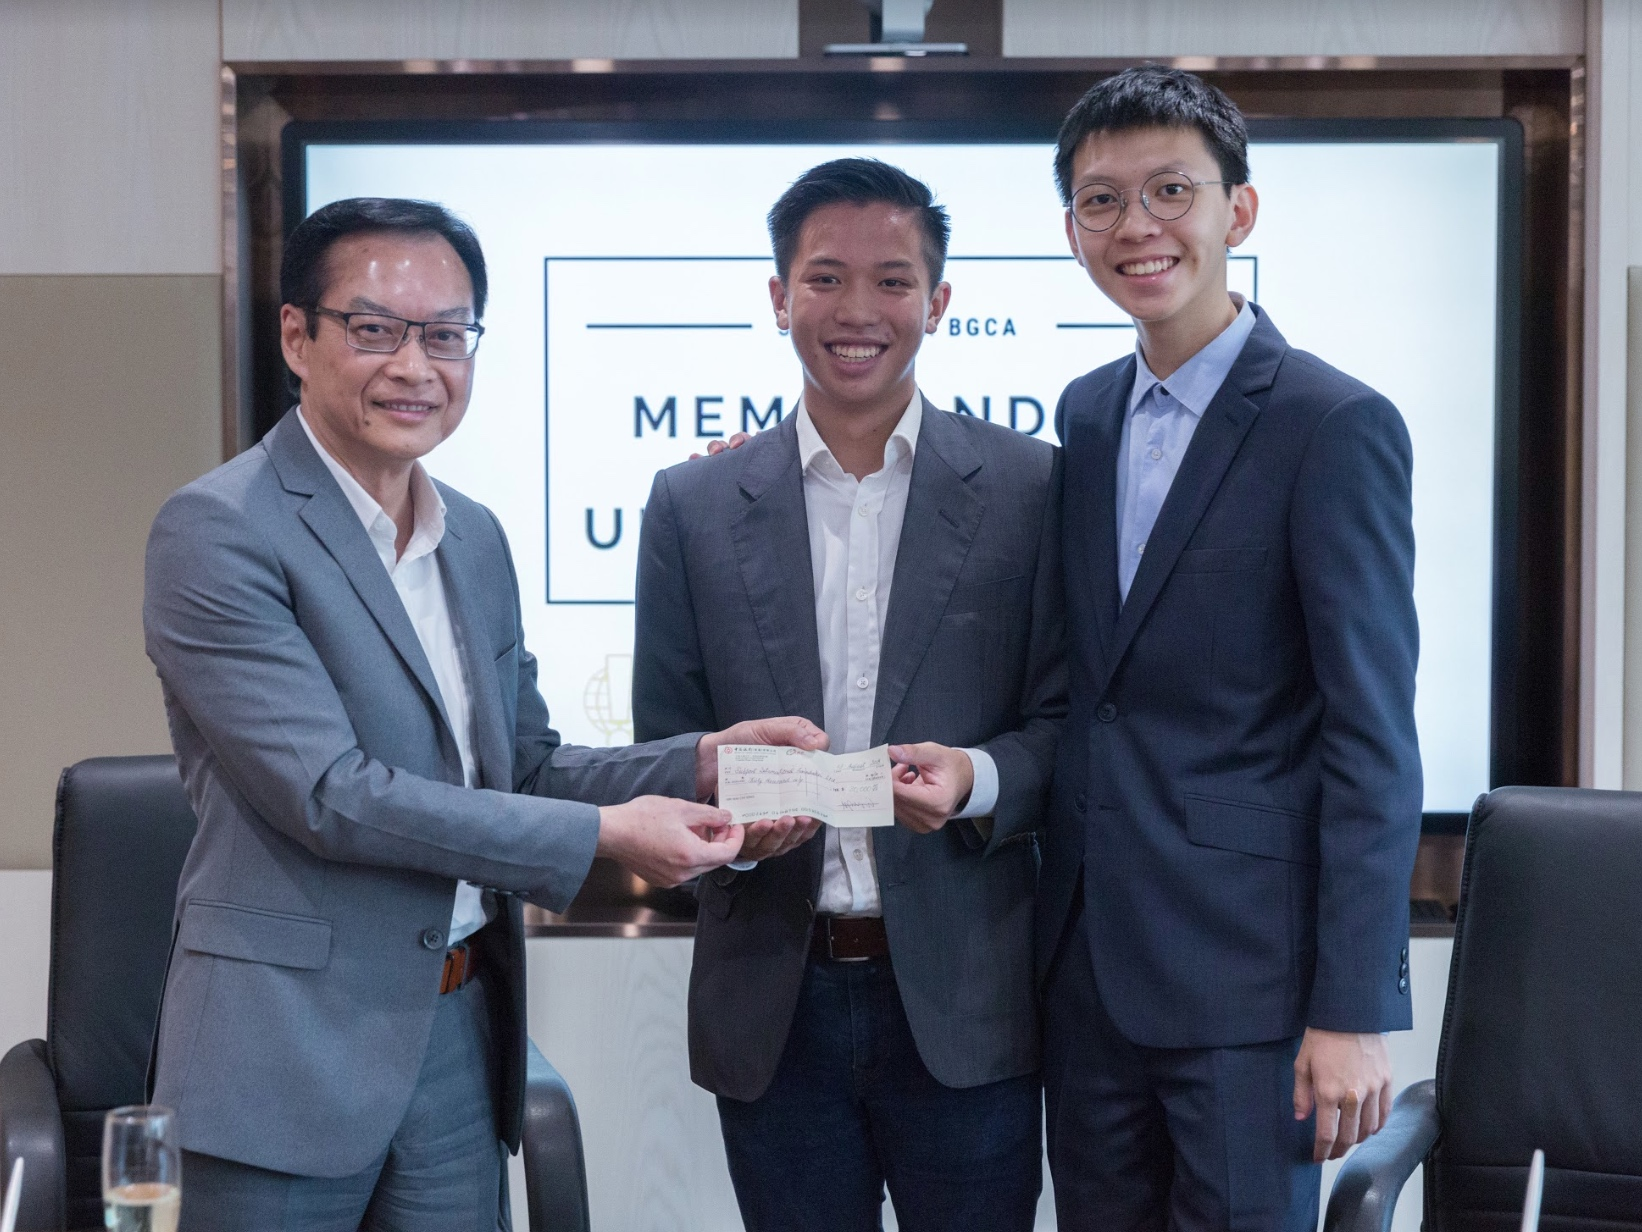 Ir Wai presenting a donation cheque to the Foundation as a token of appreciation to President Joseph Wan's service over the past four years, and this being his last official event